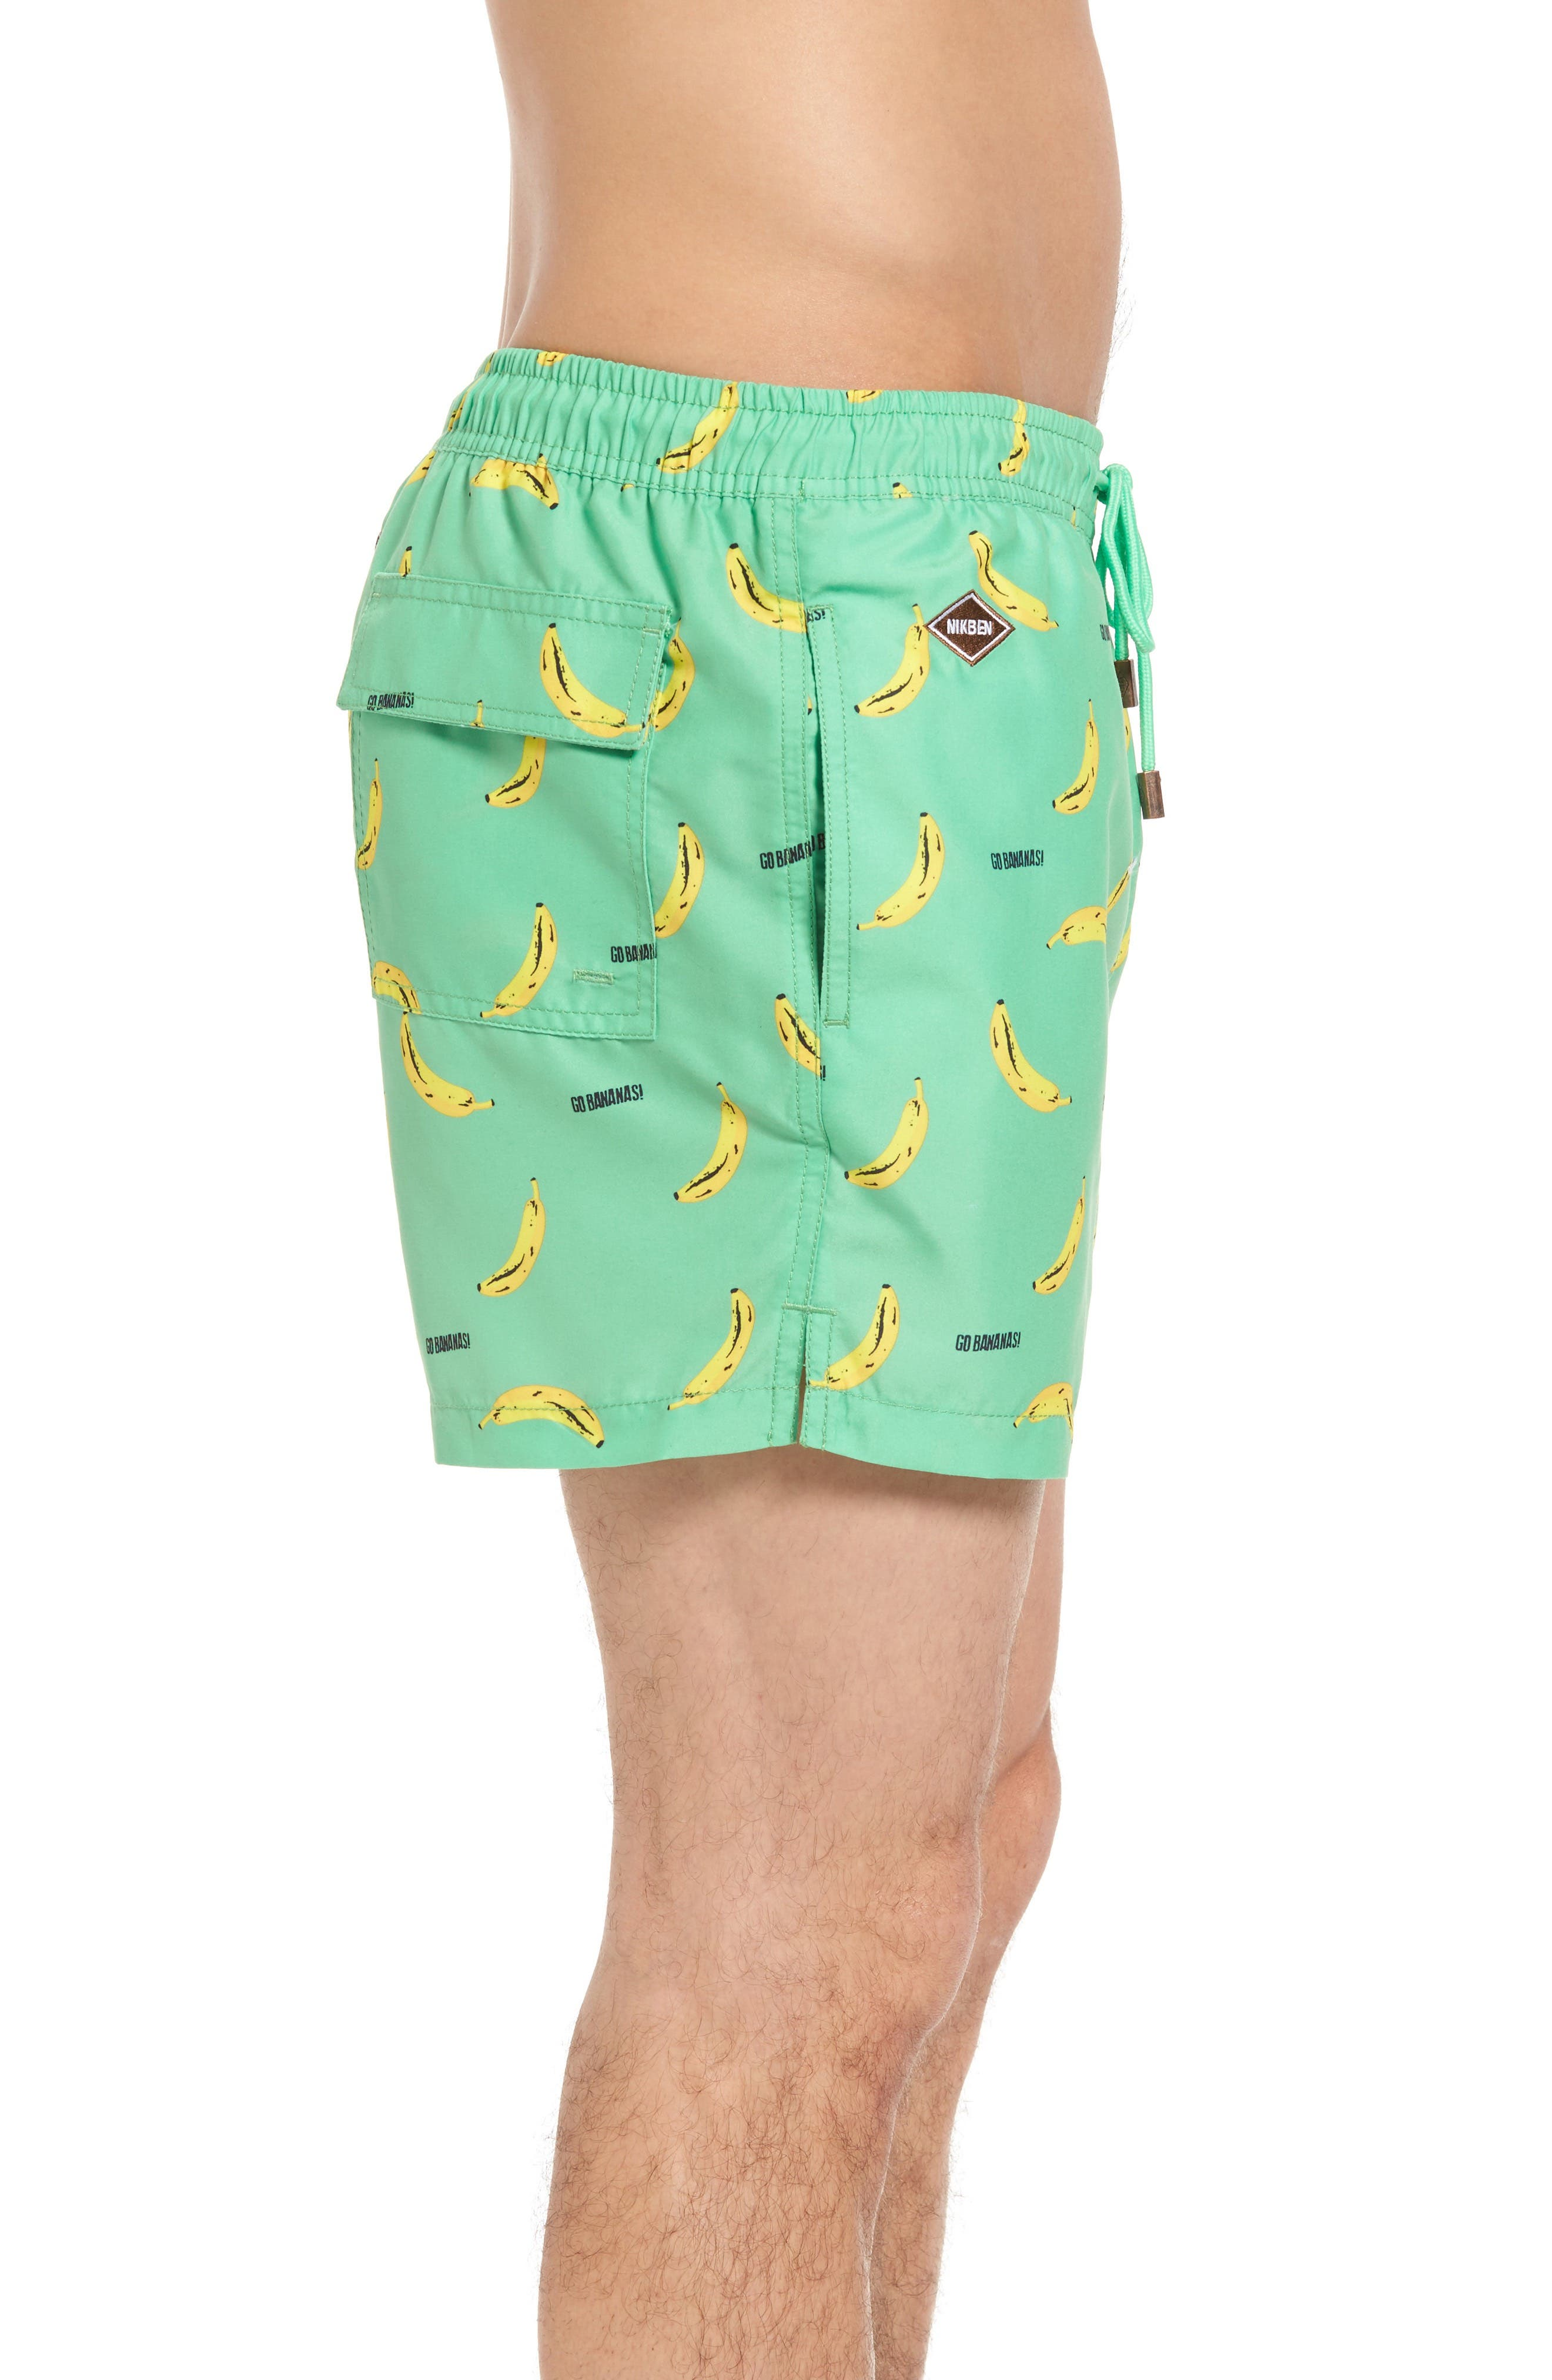 Go Bananas Swim Trunks,                             Alternate thumbnail 3, color,                             300